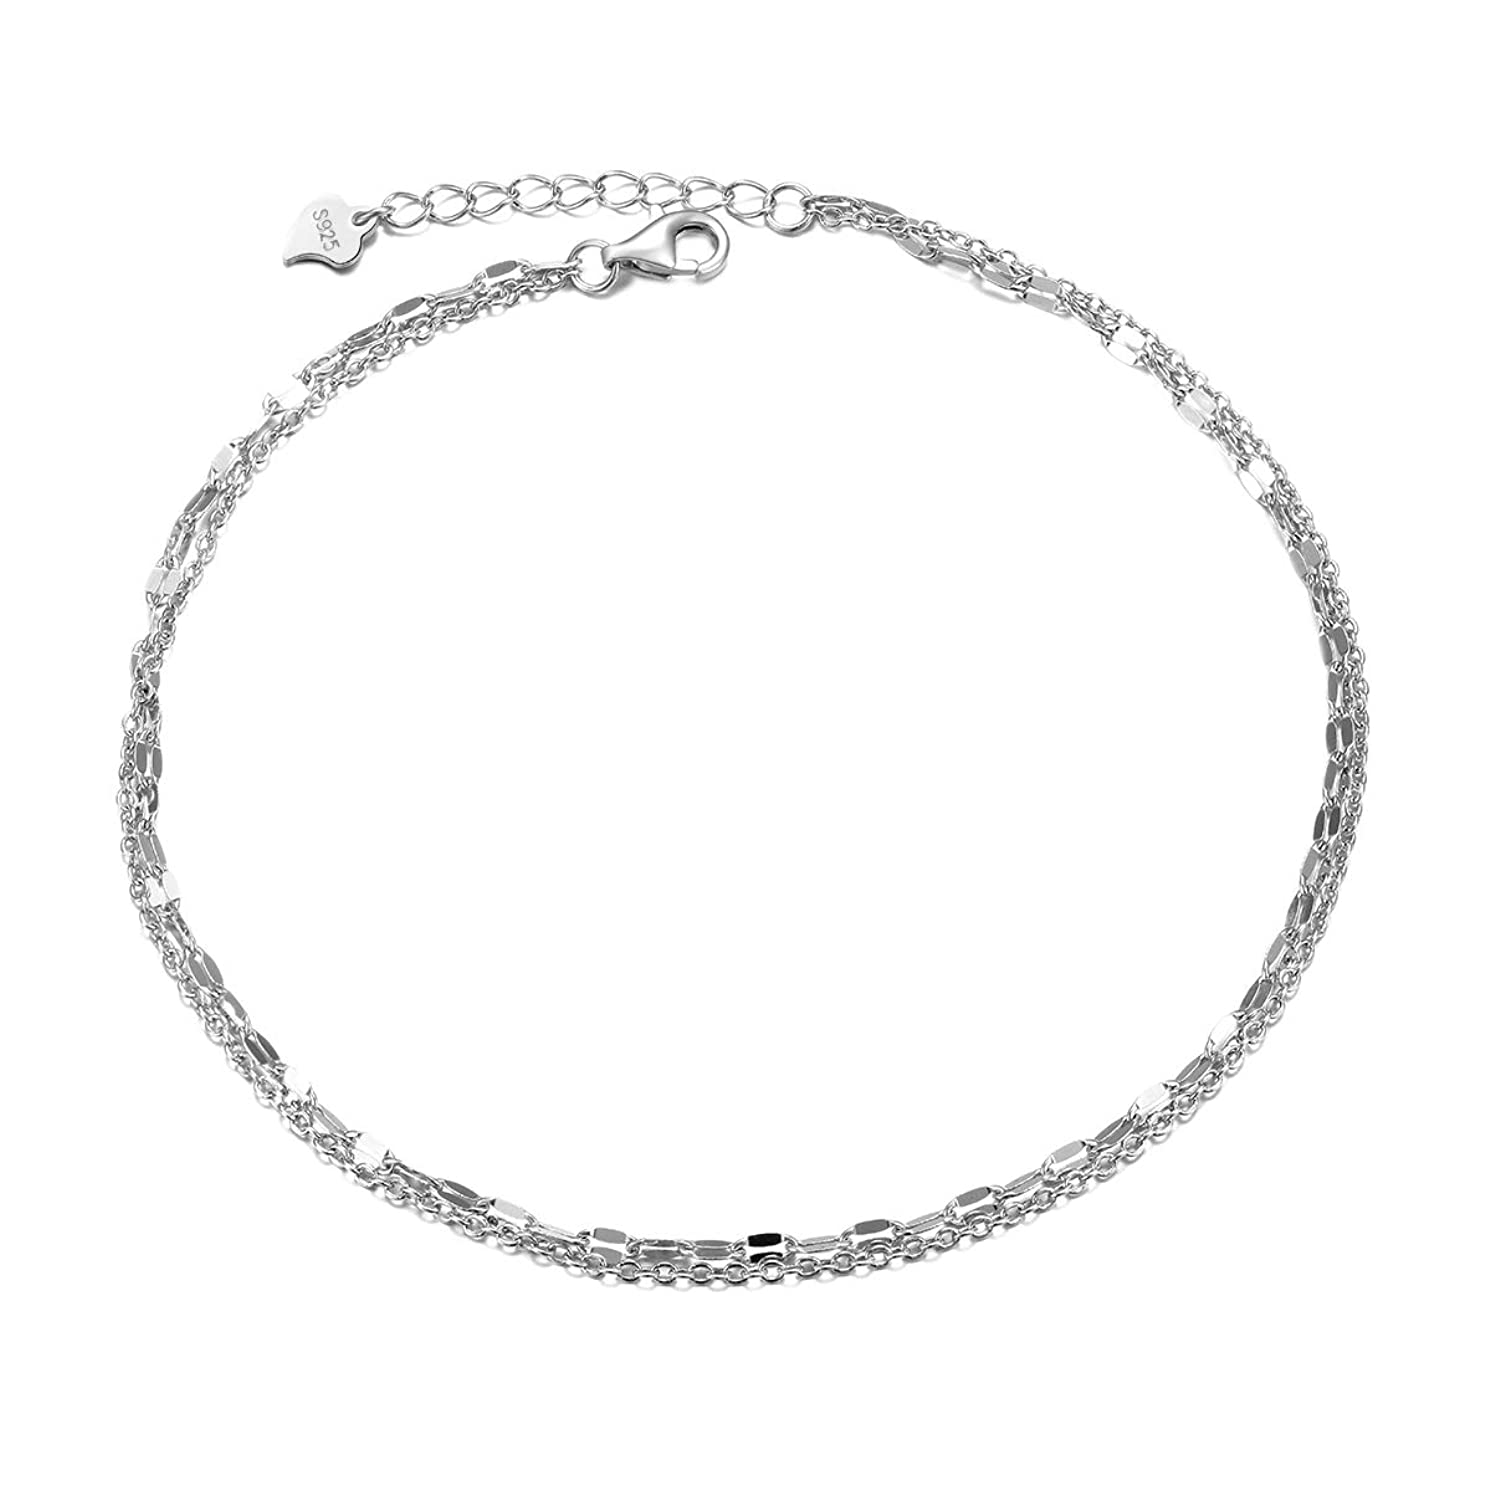 Women's Anklet S925 Sterling Silver Dainty Camellia Flower Simple Circle or Two Interlocking Infinity Circles Tiny Lace Layered Foot Chain Adjustable 9 to 10 inches